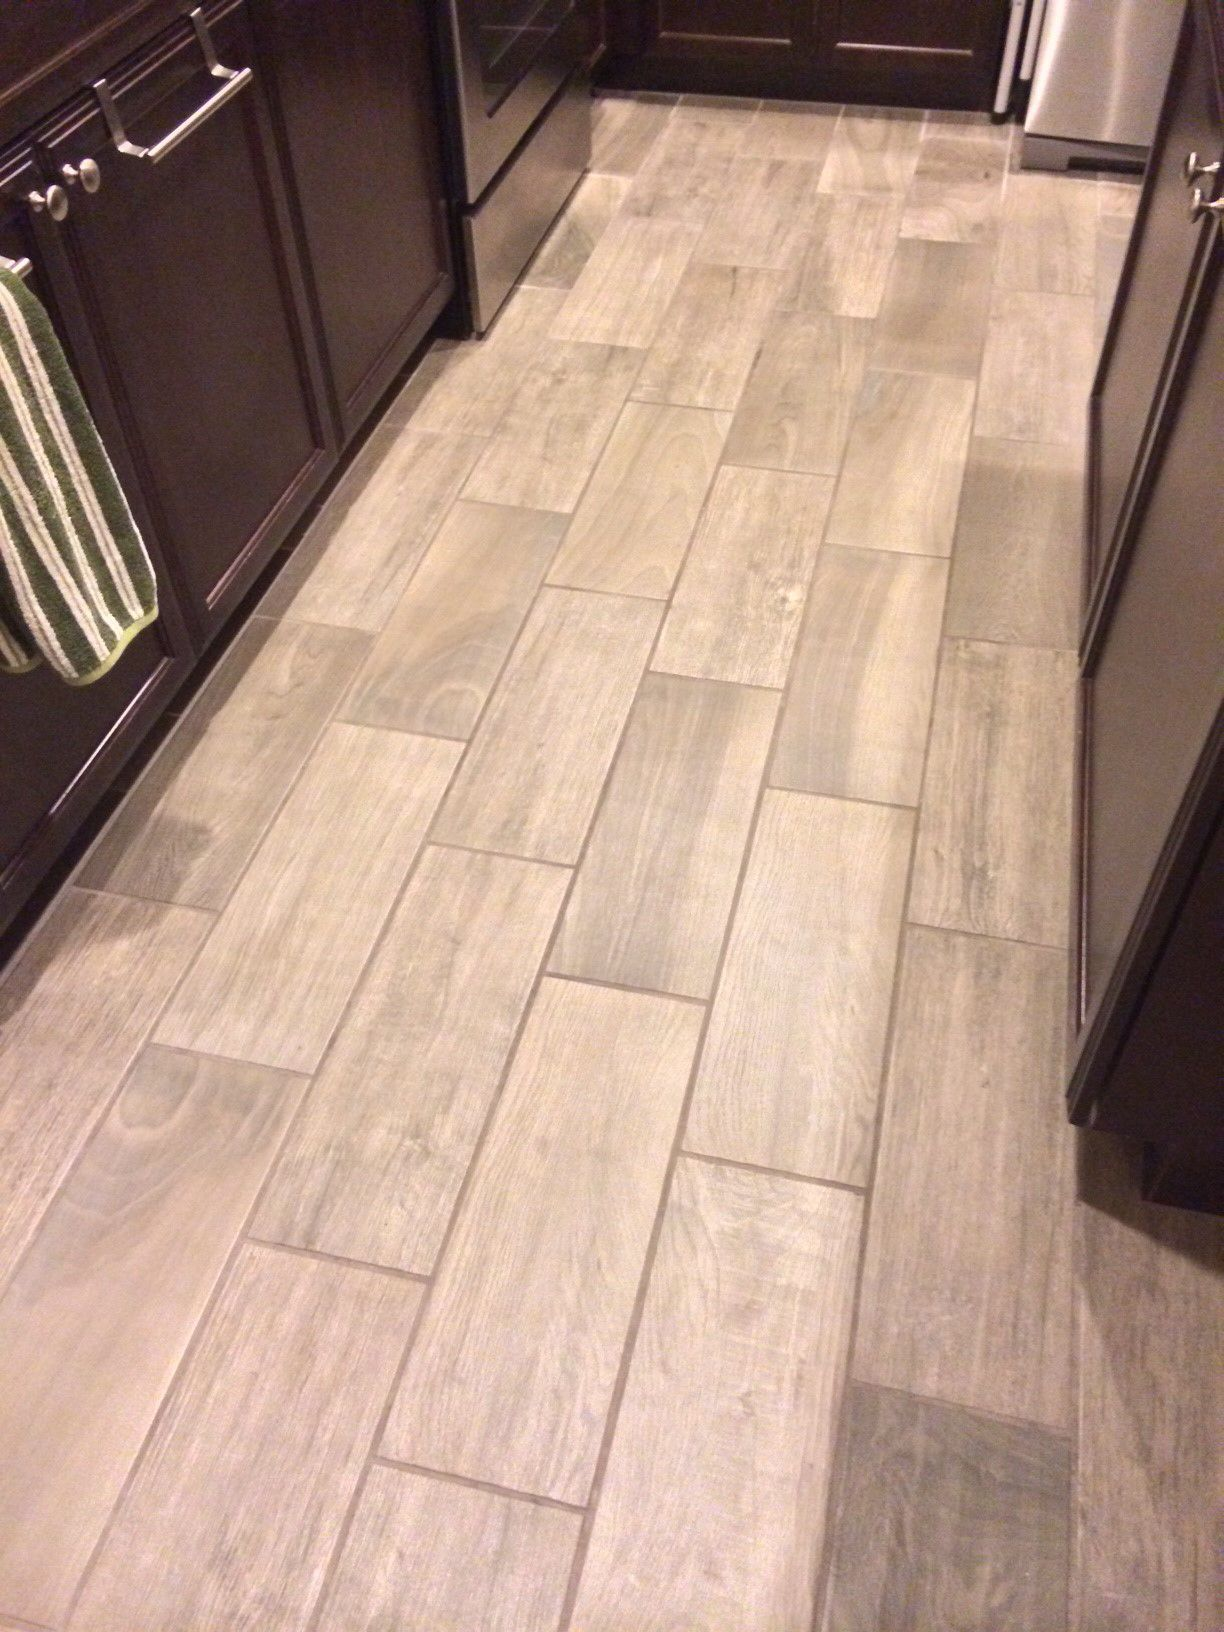 Beautiful Ceramic Tile That Looks Like Wood Emblem Color Gray